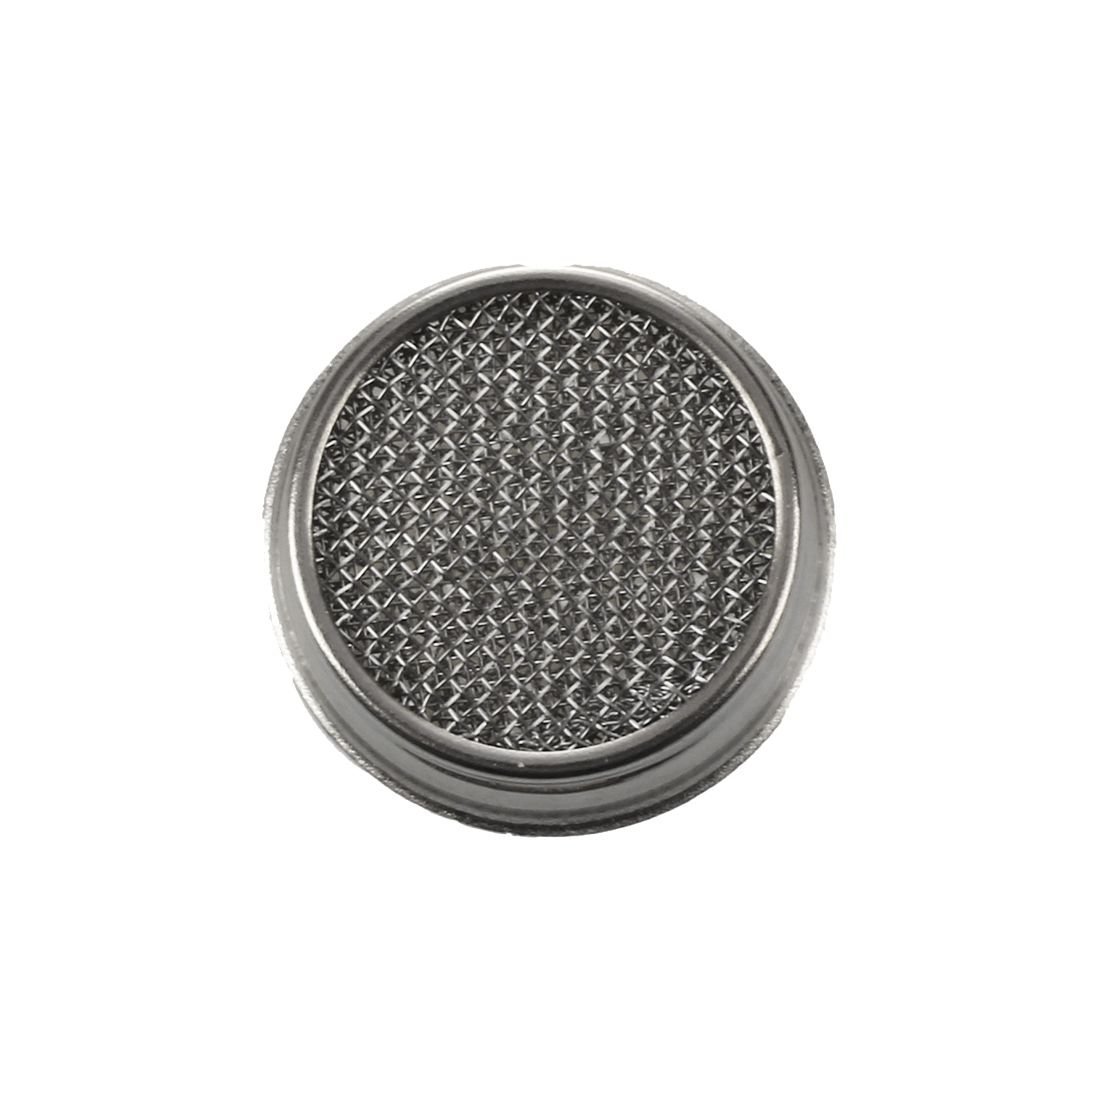 SODIAL(R) Kitchen/Bathroom Faucet Sprayer Strainer Tap Filter---White and Silver by SODIAL(R) (Image #3)